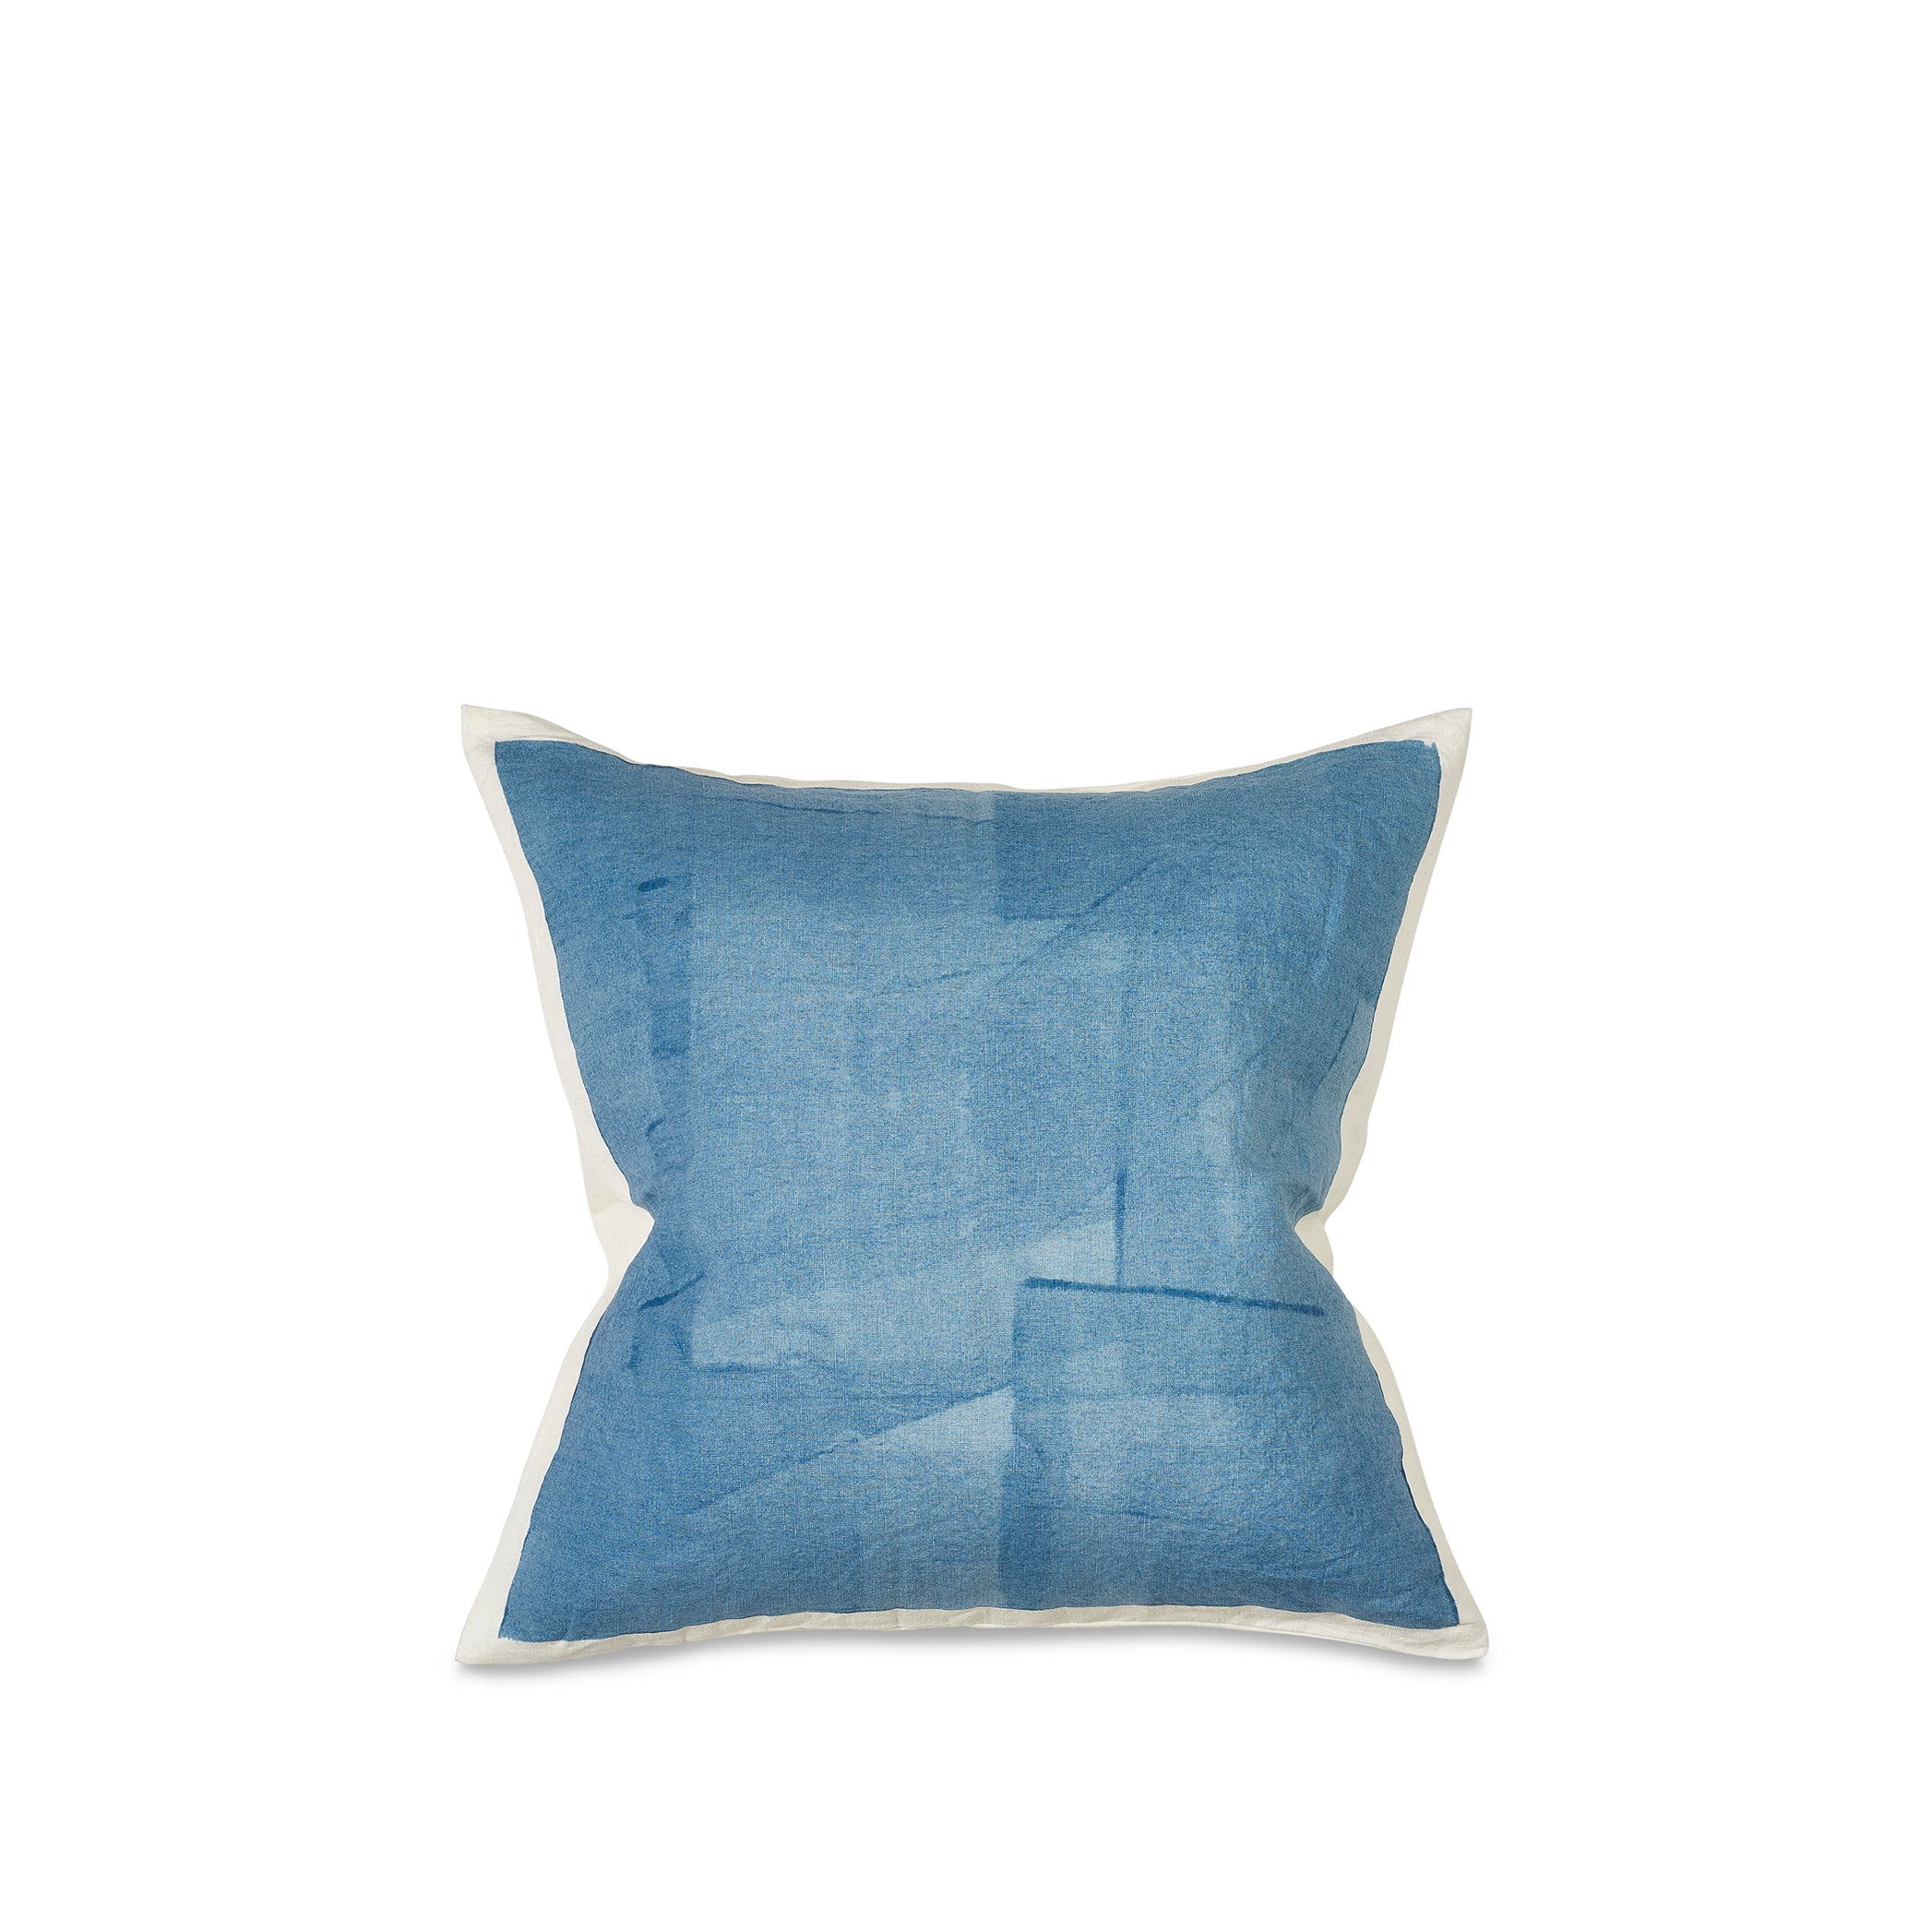 Hand Painted Linen Cushion Cover in Sky Blue, 50cm x 50cm